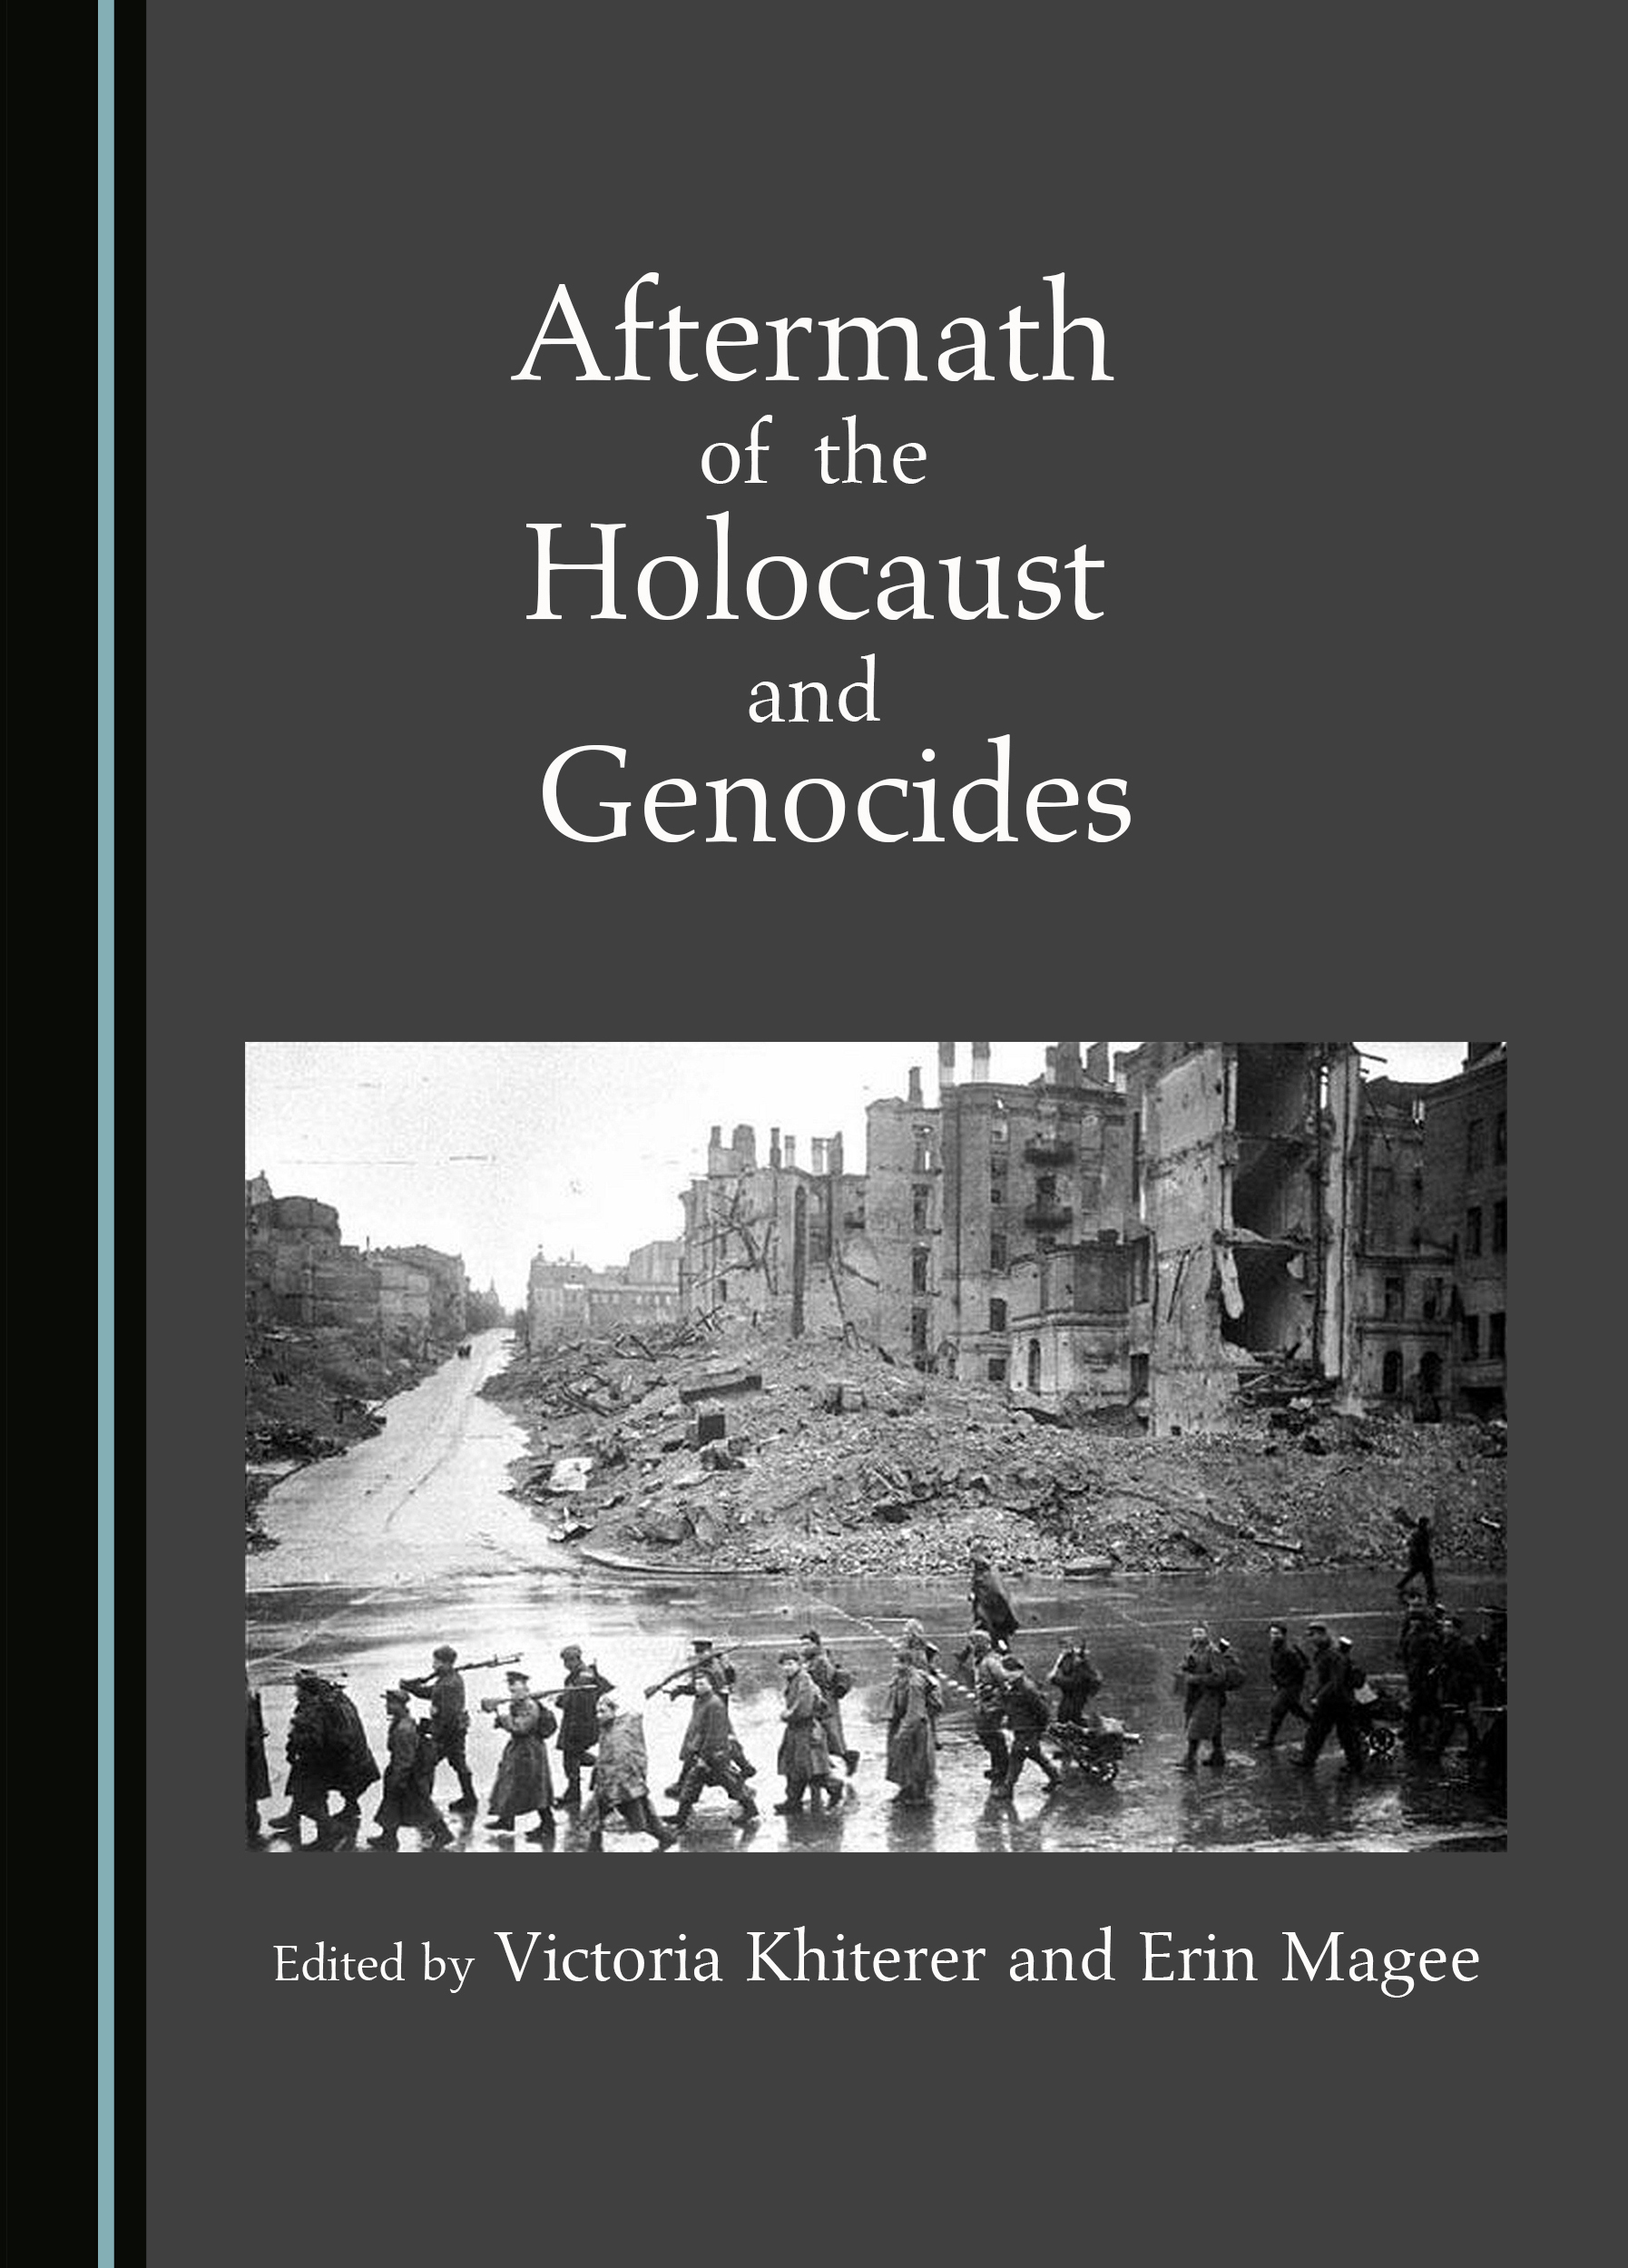 Aftermath of the Holocaust and Genocides